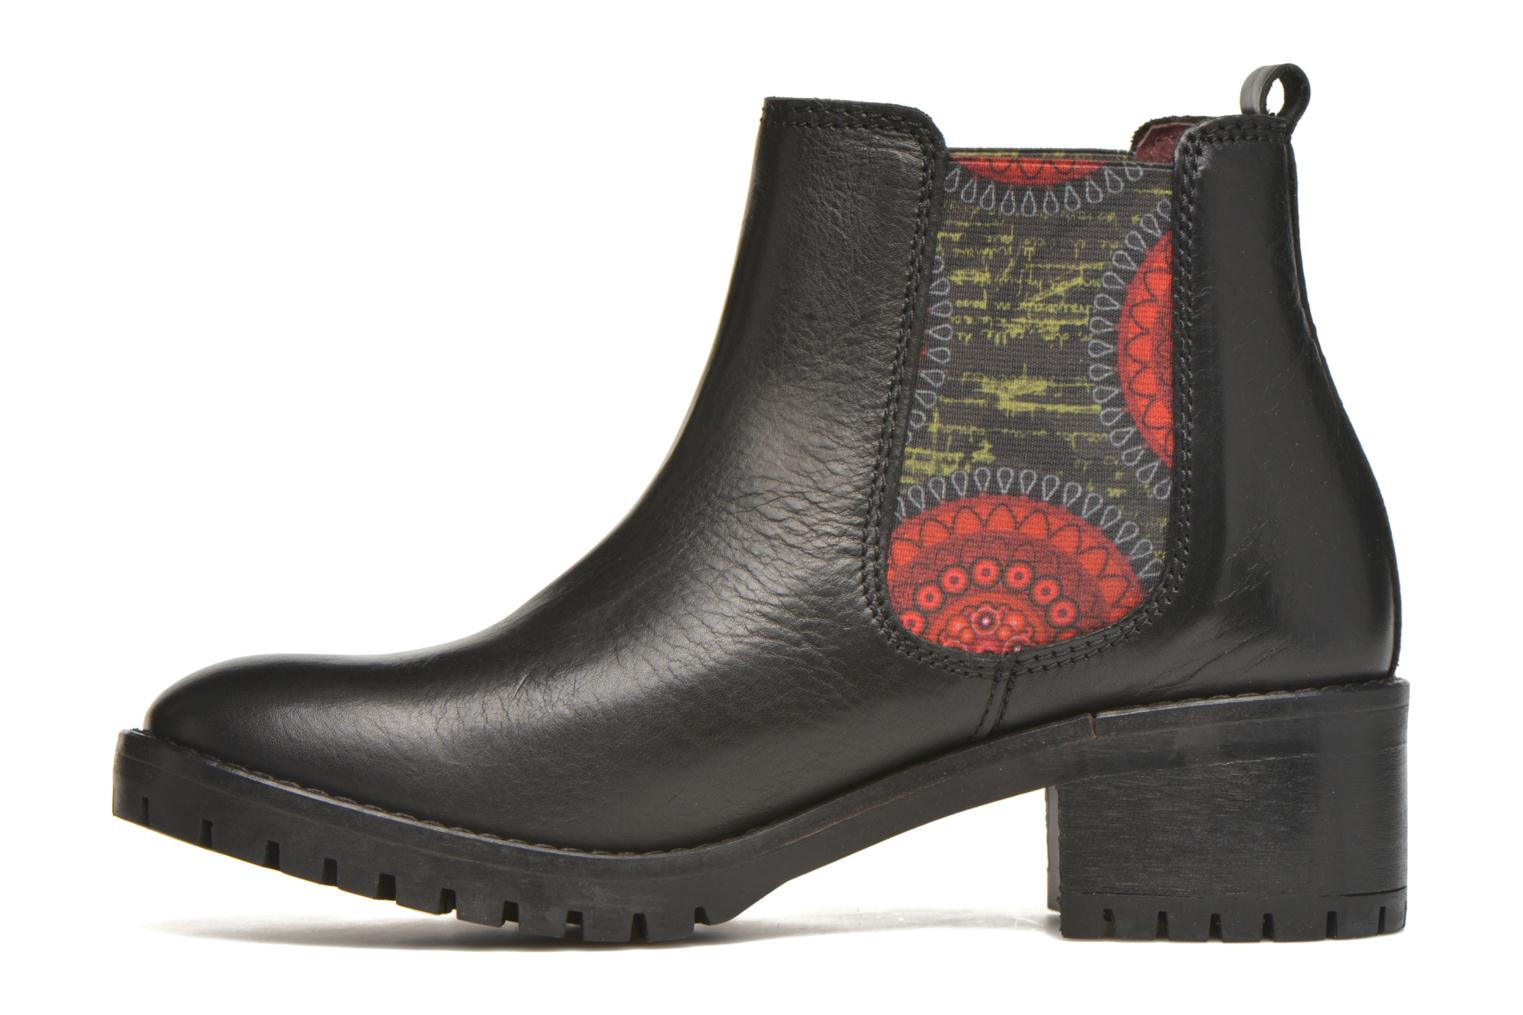 Bottines et boots Desigual Charly Noir vue face